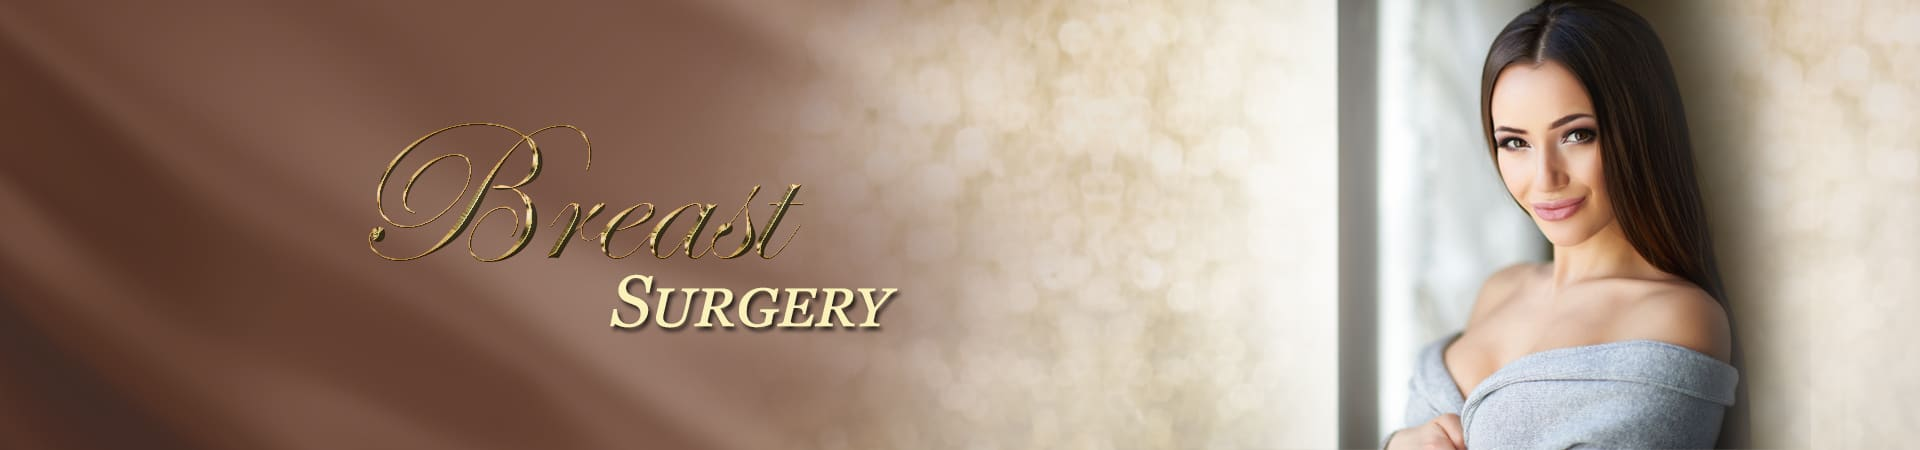 Breast Surgery - banner